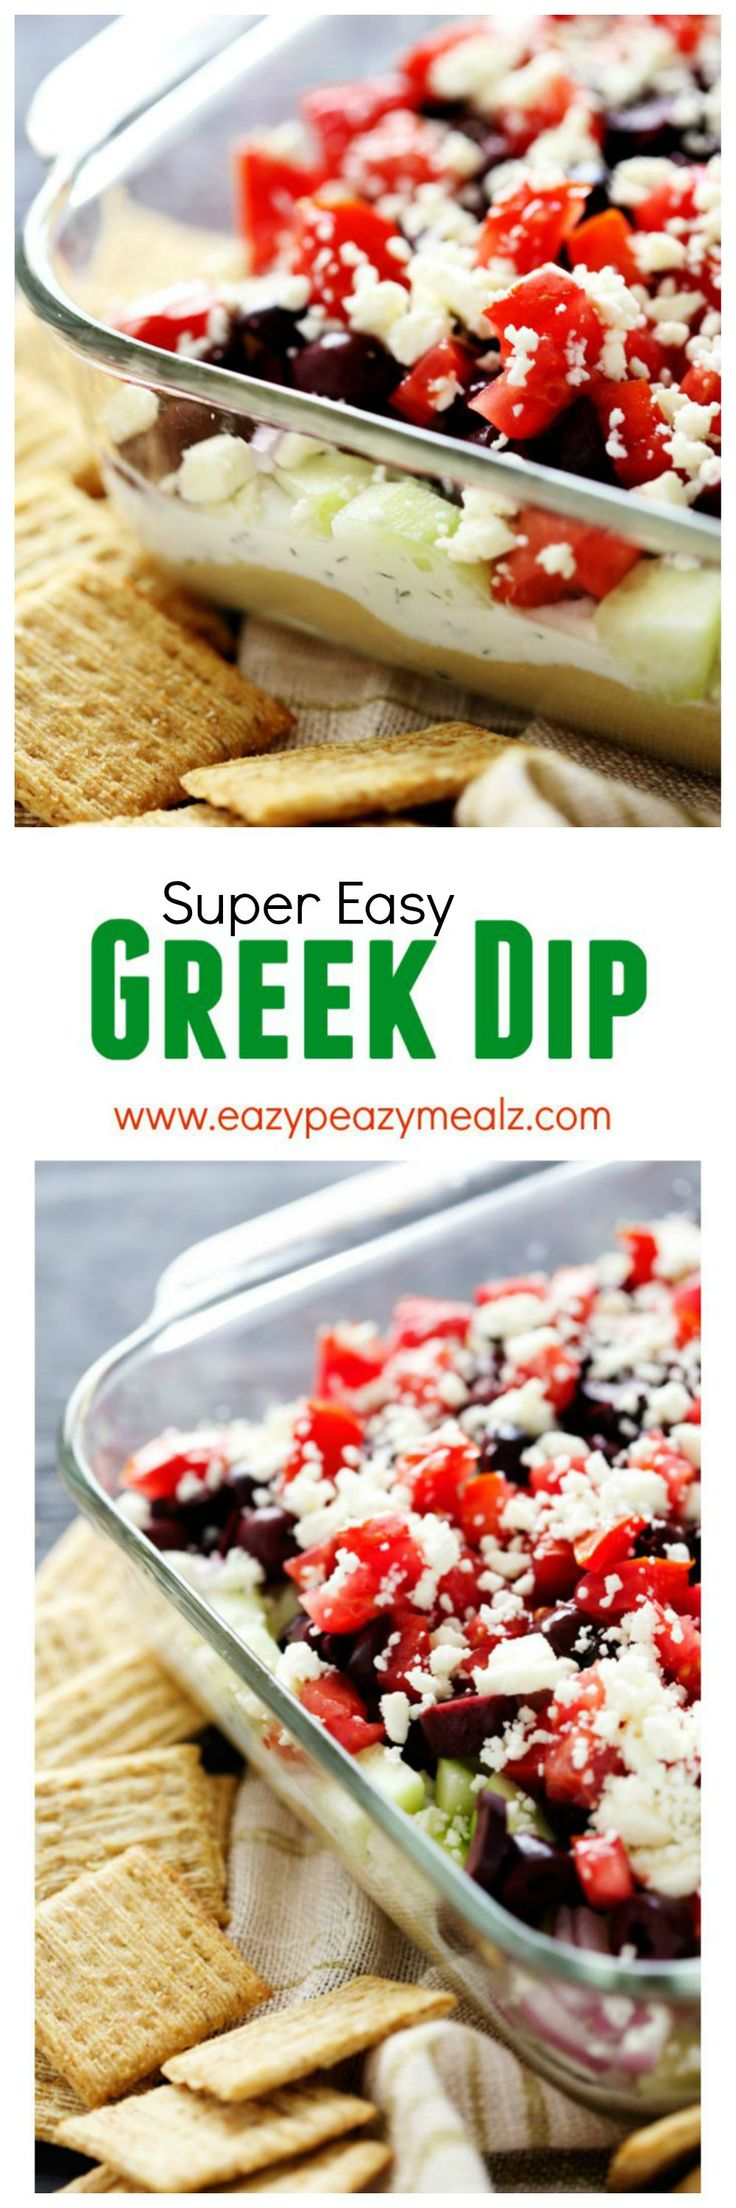 This super easy greek dip is the perfect dip. Easy, flavorful, and good for you! Ummm hello game day! - Eazy Peazy Mealz